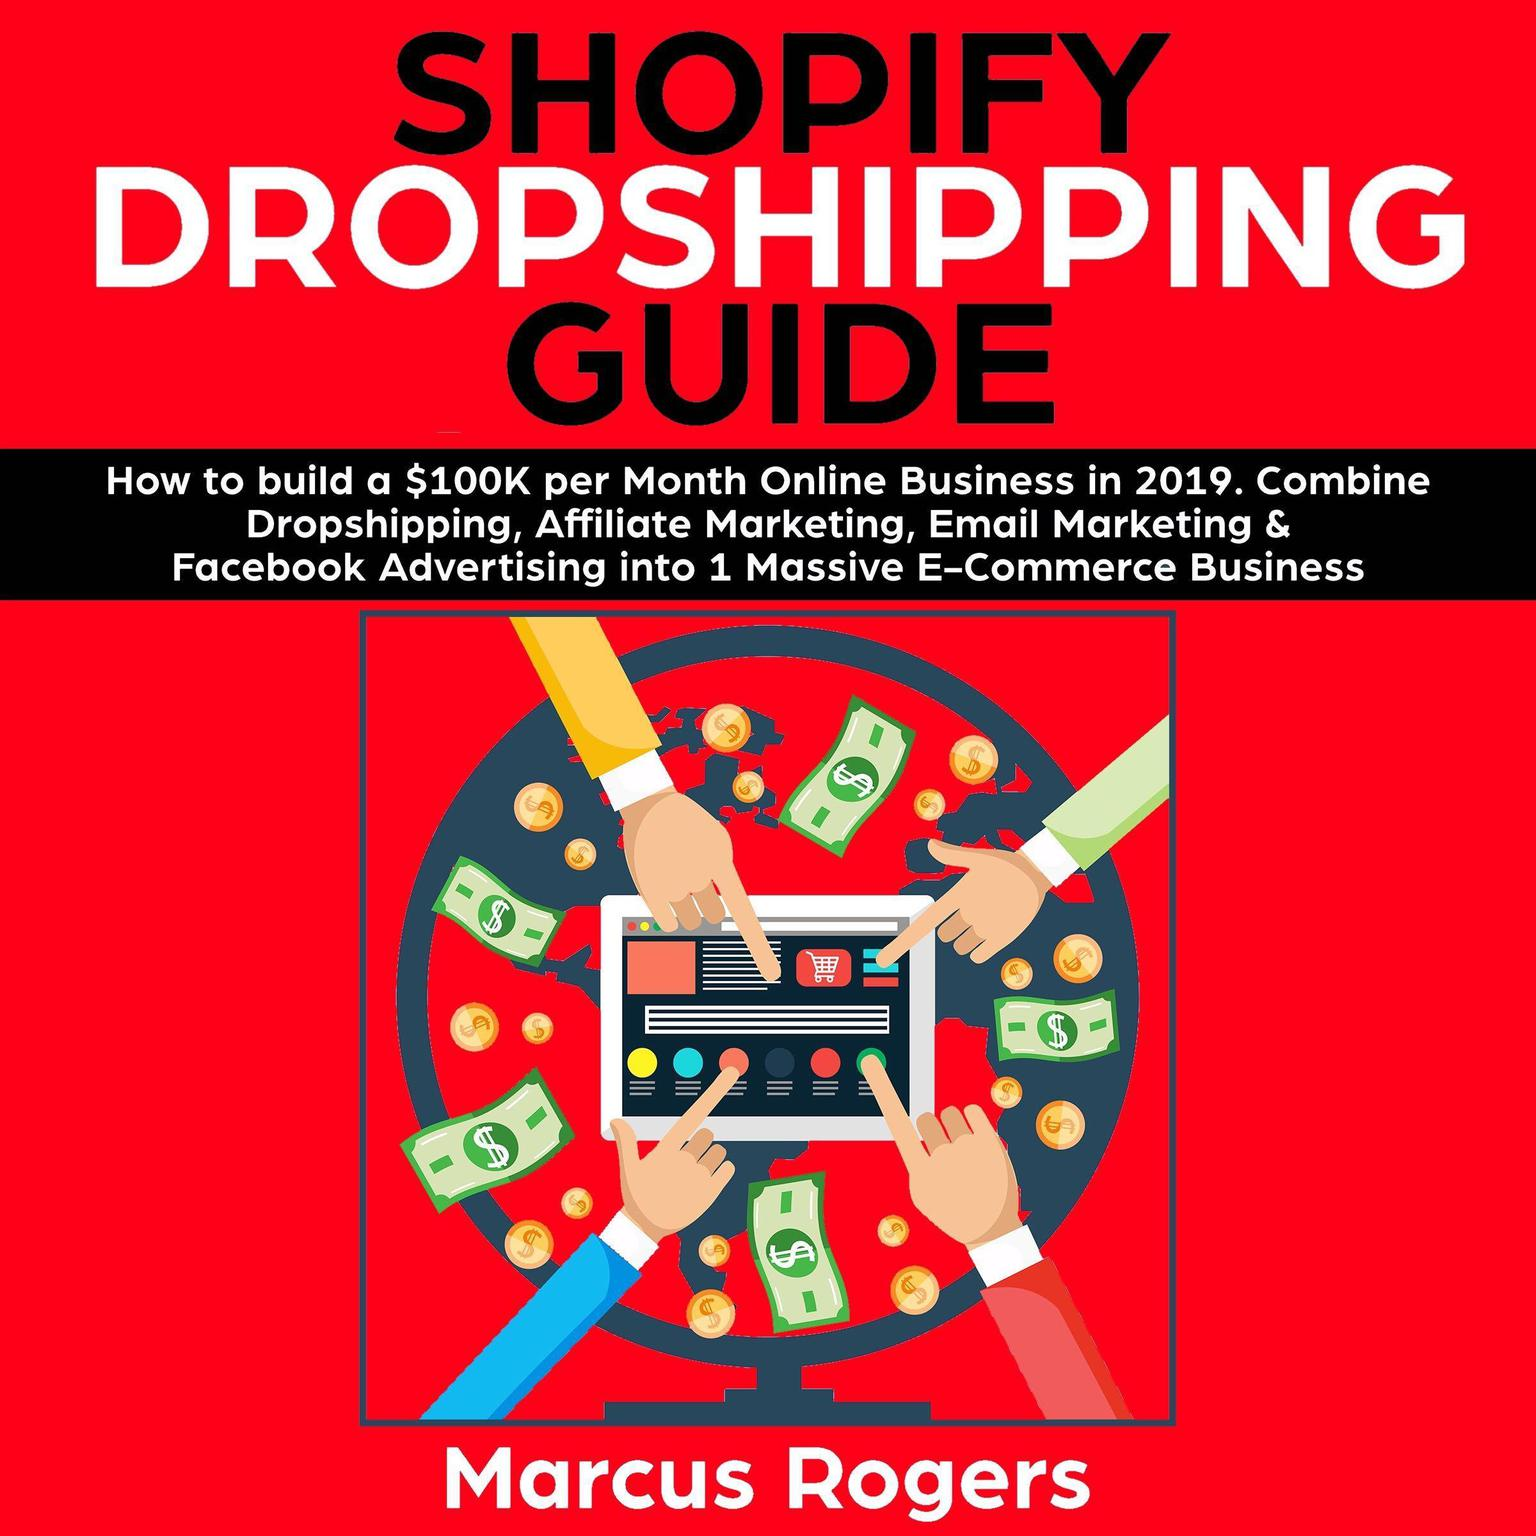 Printable Shopify Dropshipping Guide: How to build a $100K per Month Online Business in 2019. Combine Dropshipping, Affiliate Marketing, Email Marketing & Facebook Advertising into 1 Massive E-Commerce Business: How to build a $100K per Month Online Business in 2019. Combine Dropshipping, Affiliate Marketing, Email Marketing & Facebook Advertising into 1 Massive E-Commerce Business Audiobook Cover Art